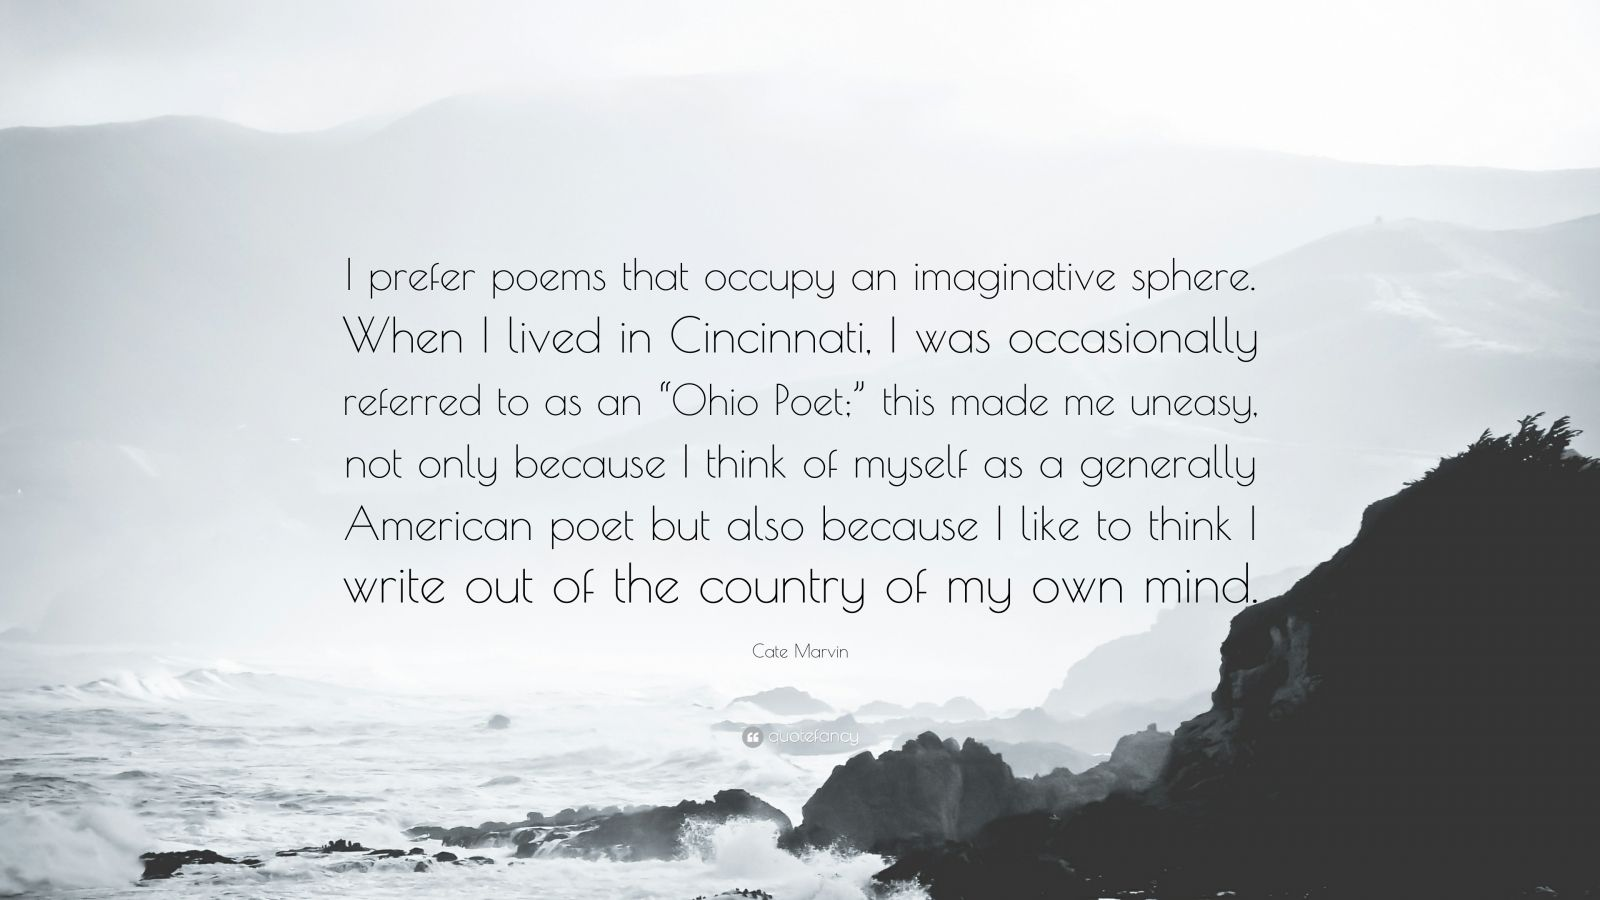 """Cate Marvin Quote: """"I prefer poems that occupy an imaginative sphere. When I lived in Cincinnati, I was occasionally referred to as an """"Ohio Poet;"""" this made me uneasy, not only because I think of myself as a generally American poet but also because I like to think I write out of the country of my own mind."""""""